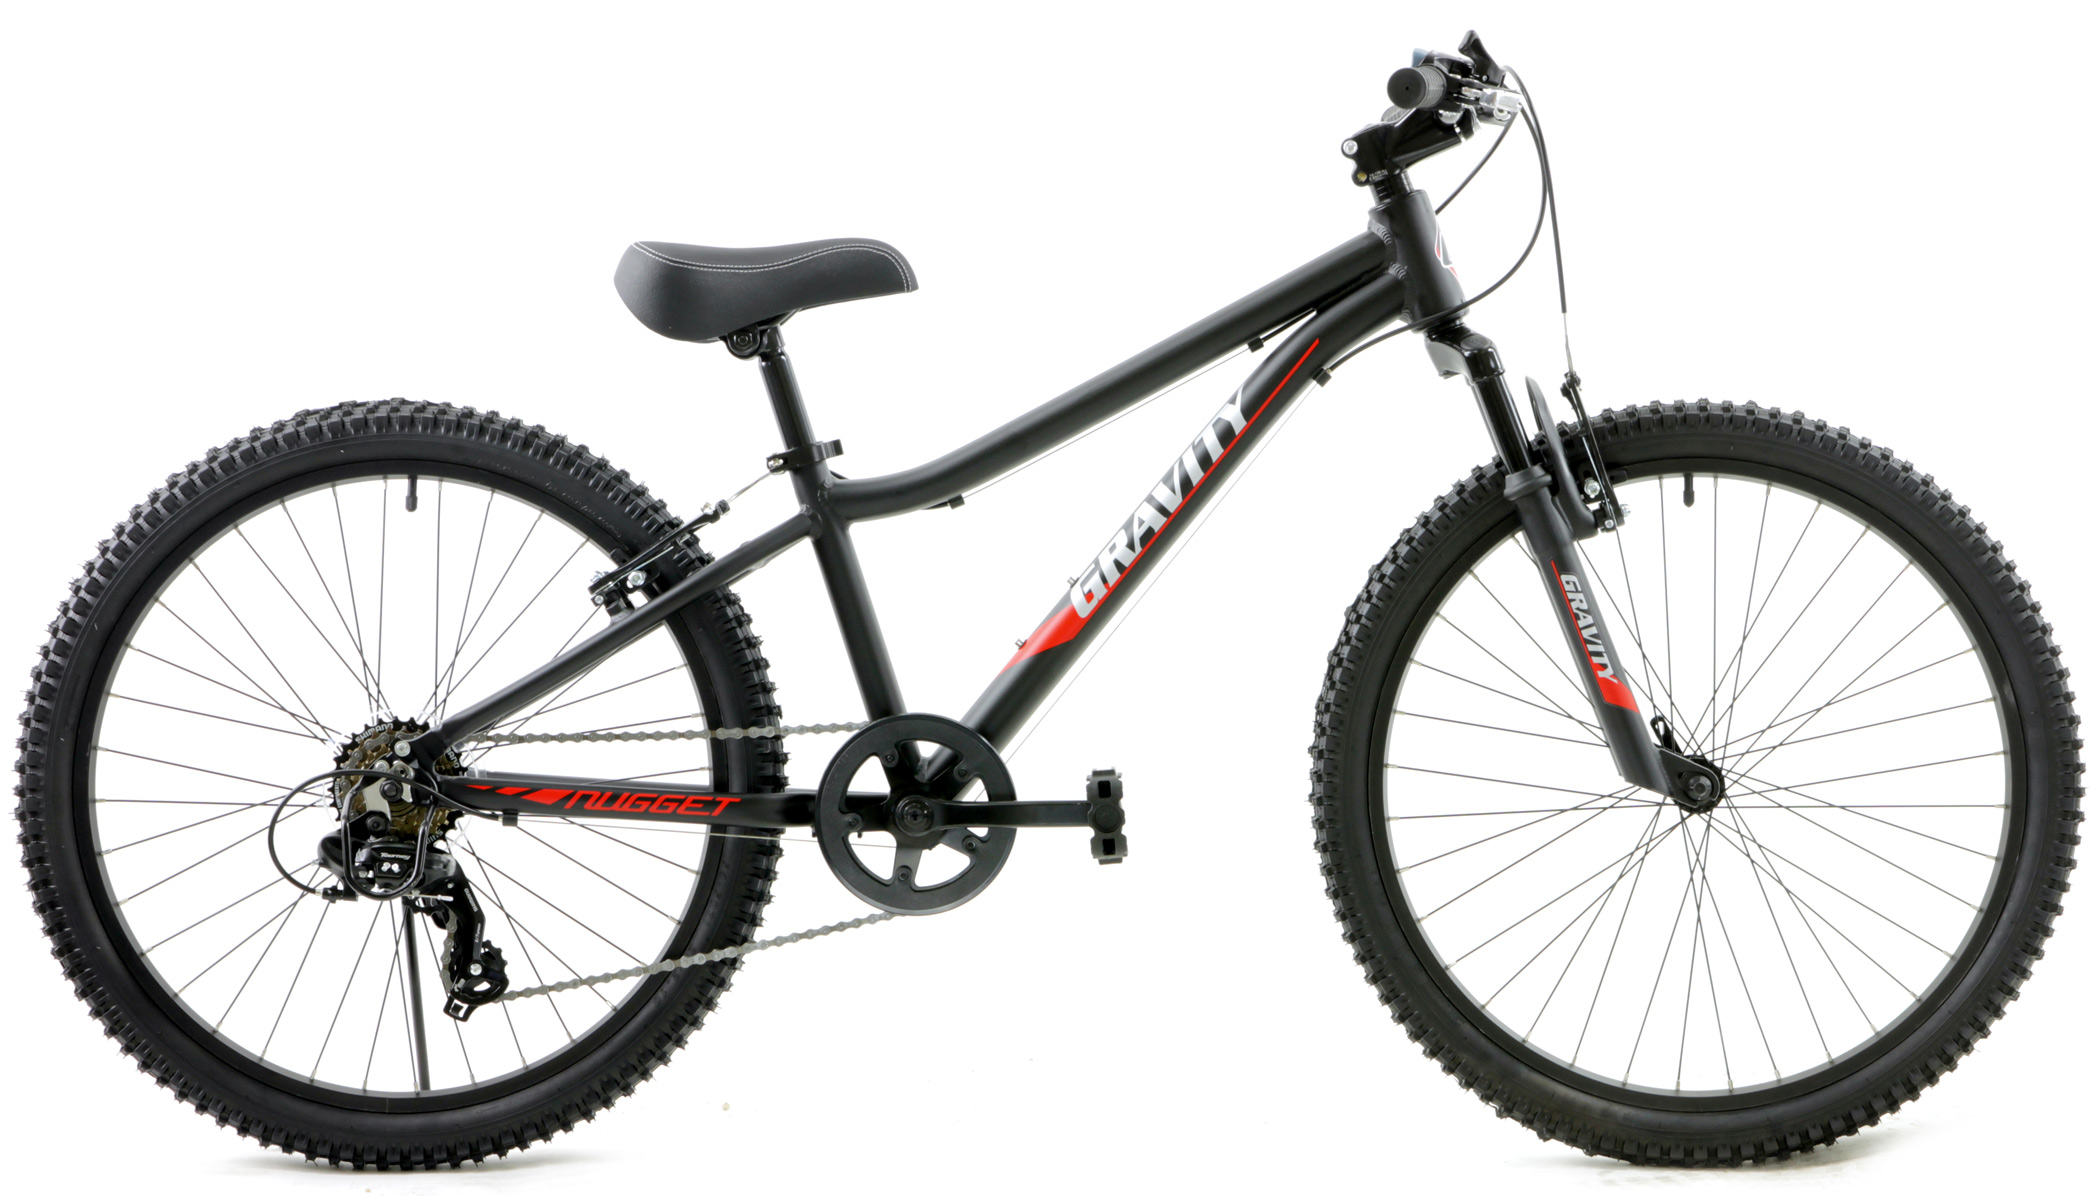 Mount Bike Shop Save Up To 60 Off Bike Shop Quality Cruiser Bikes For Lil Riders